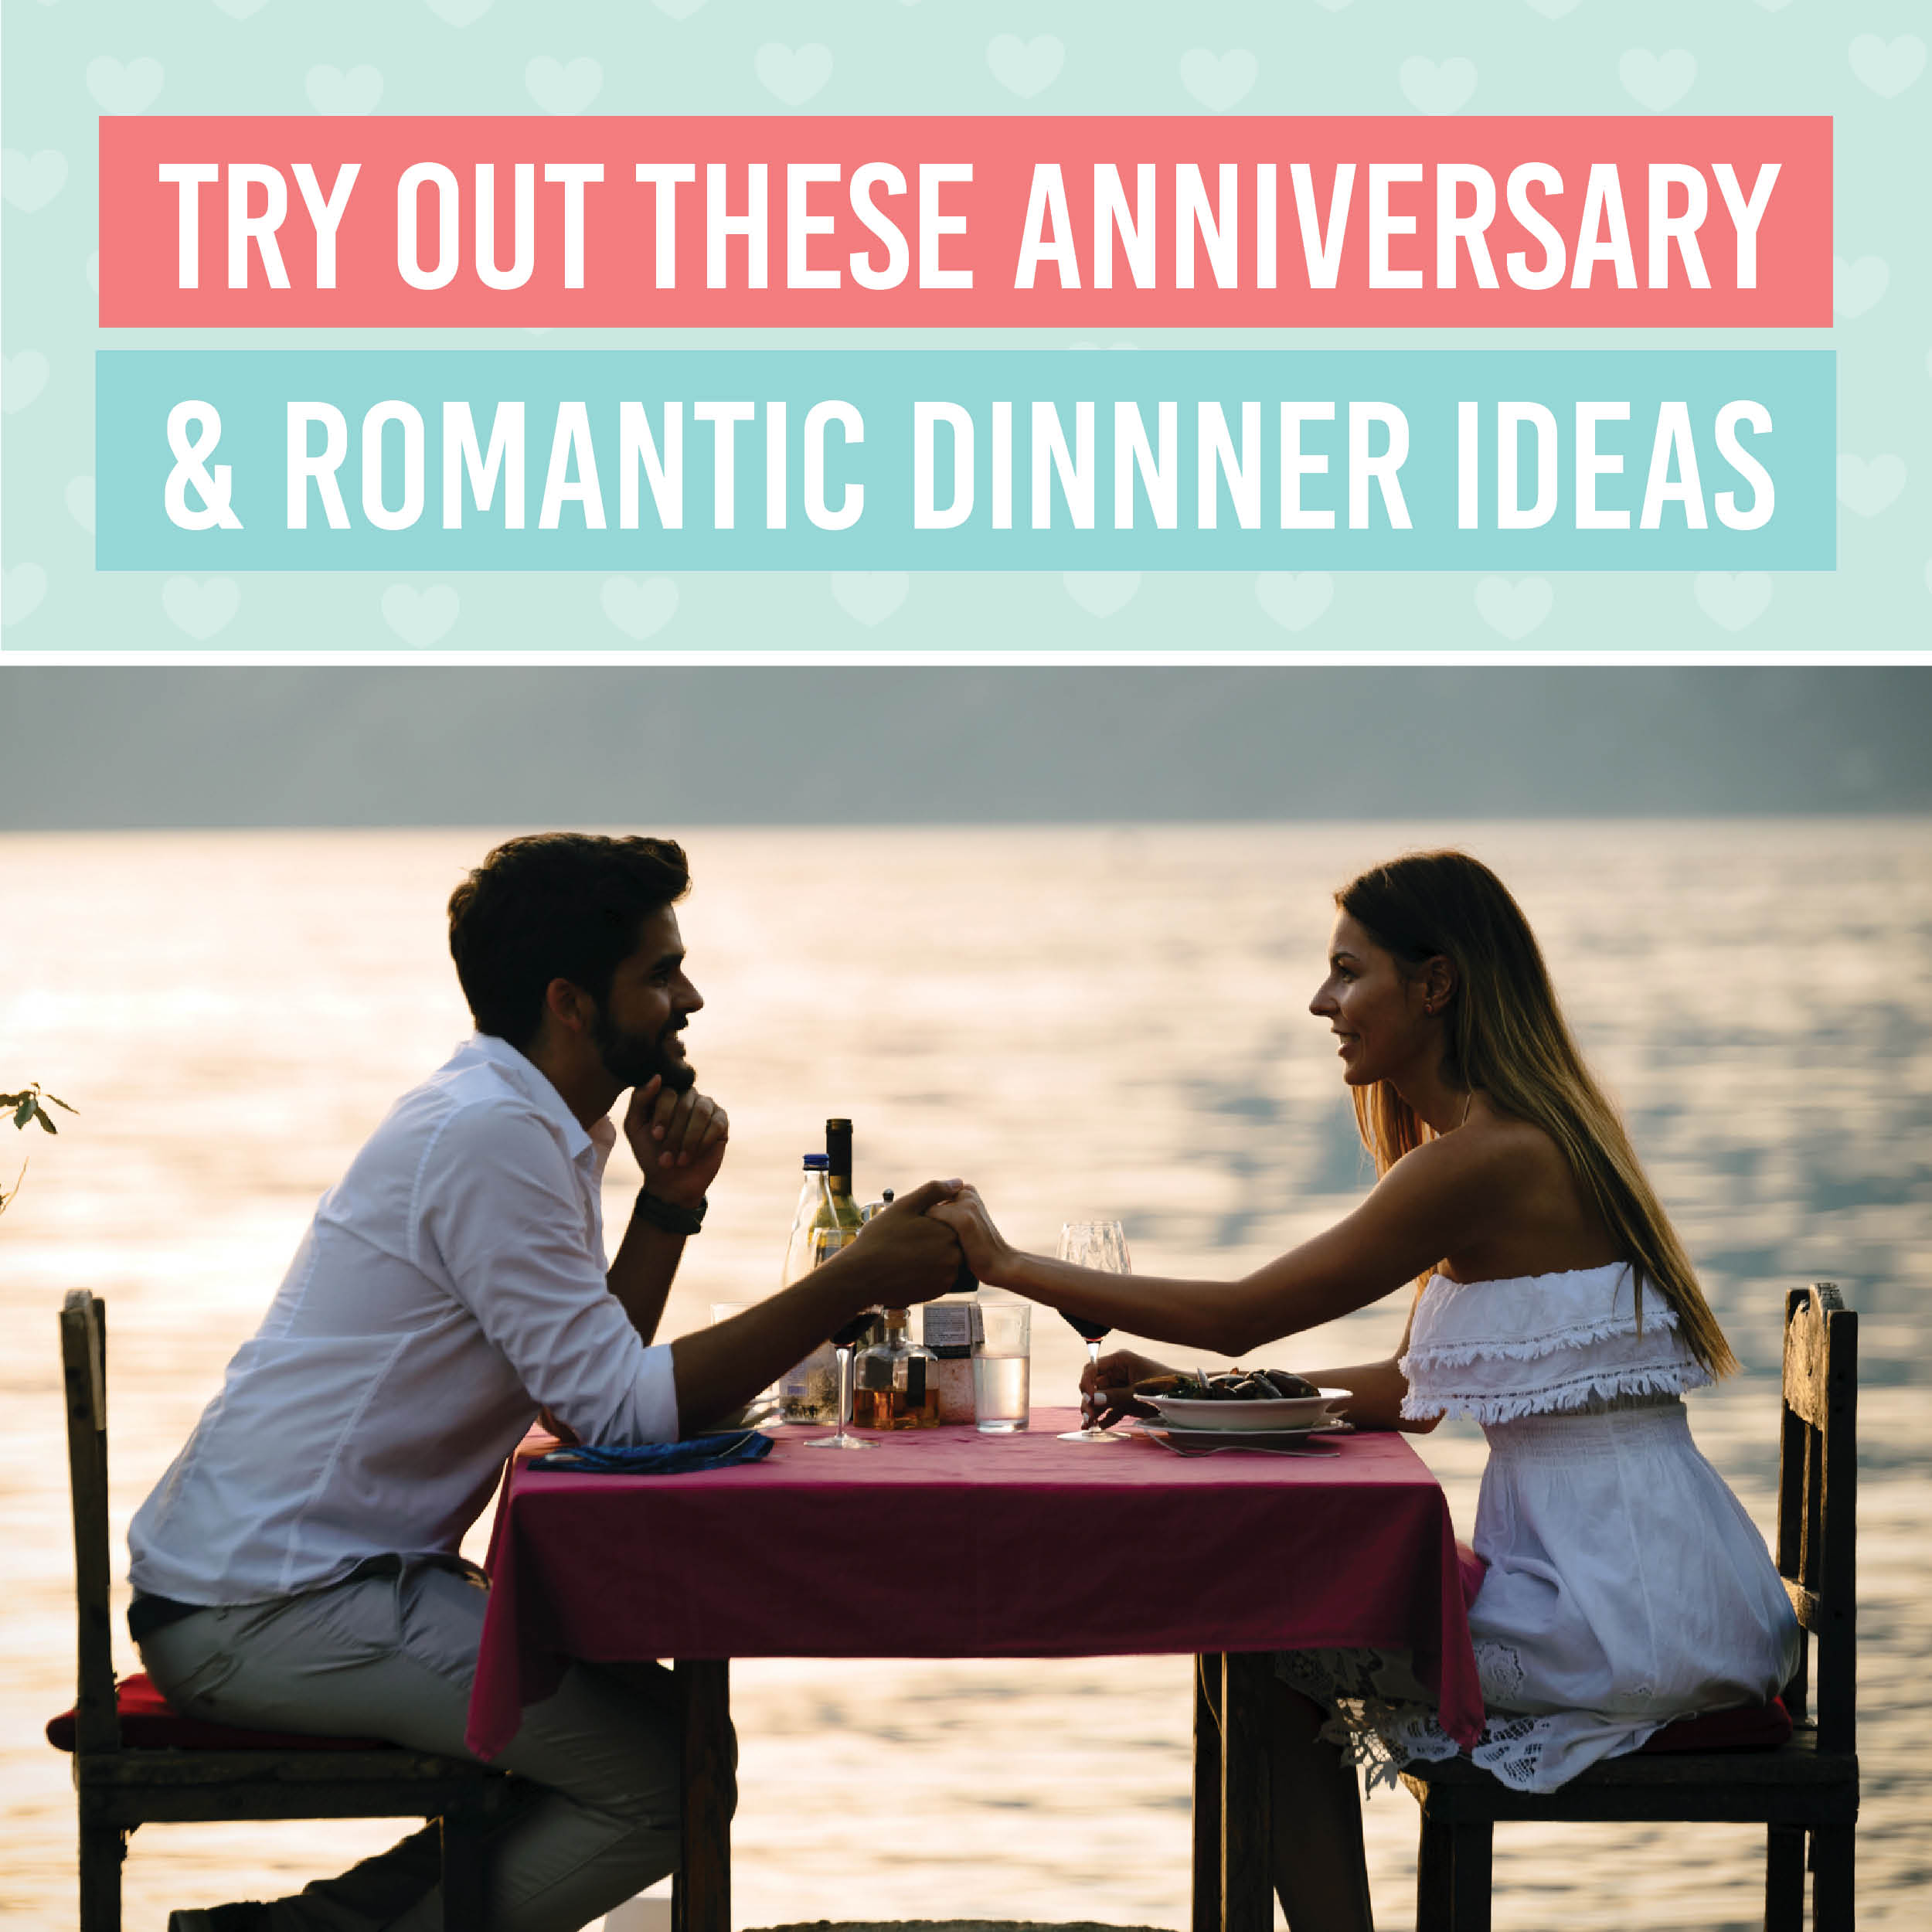 Try Out These Anniversary and Romantic Dinner Ideas